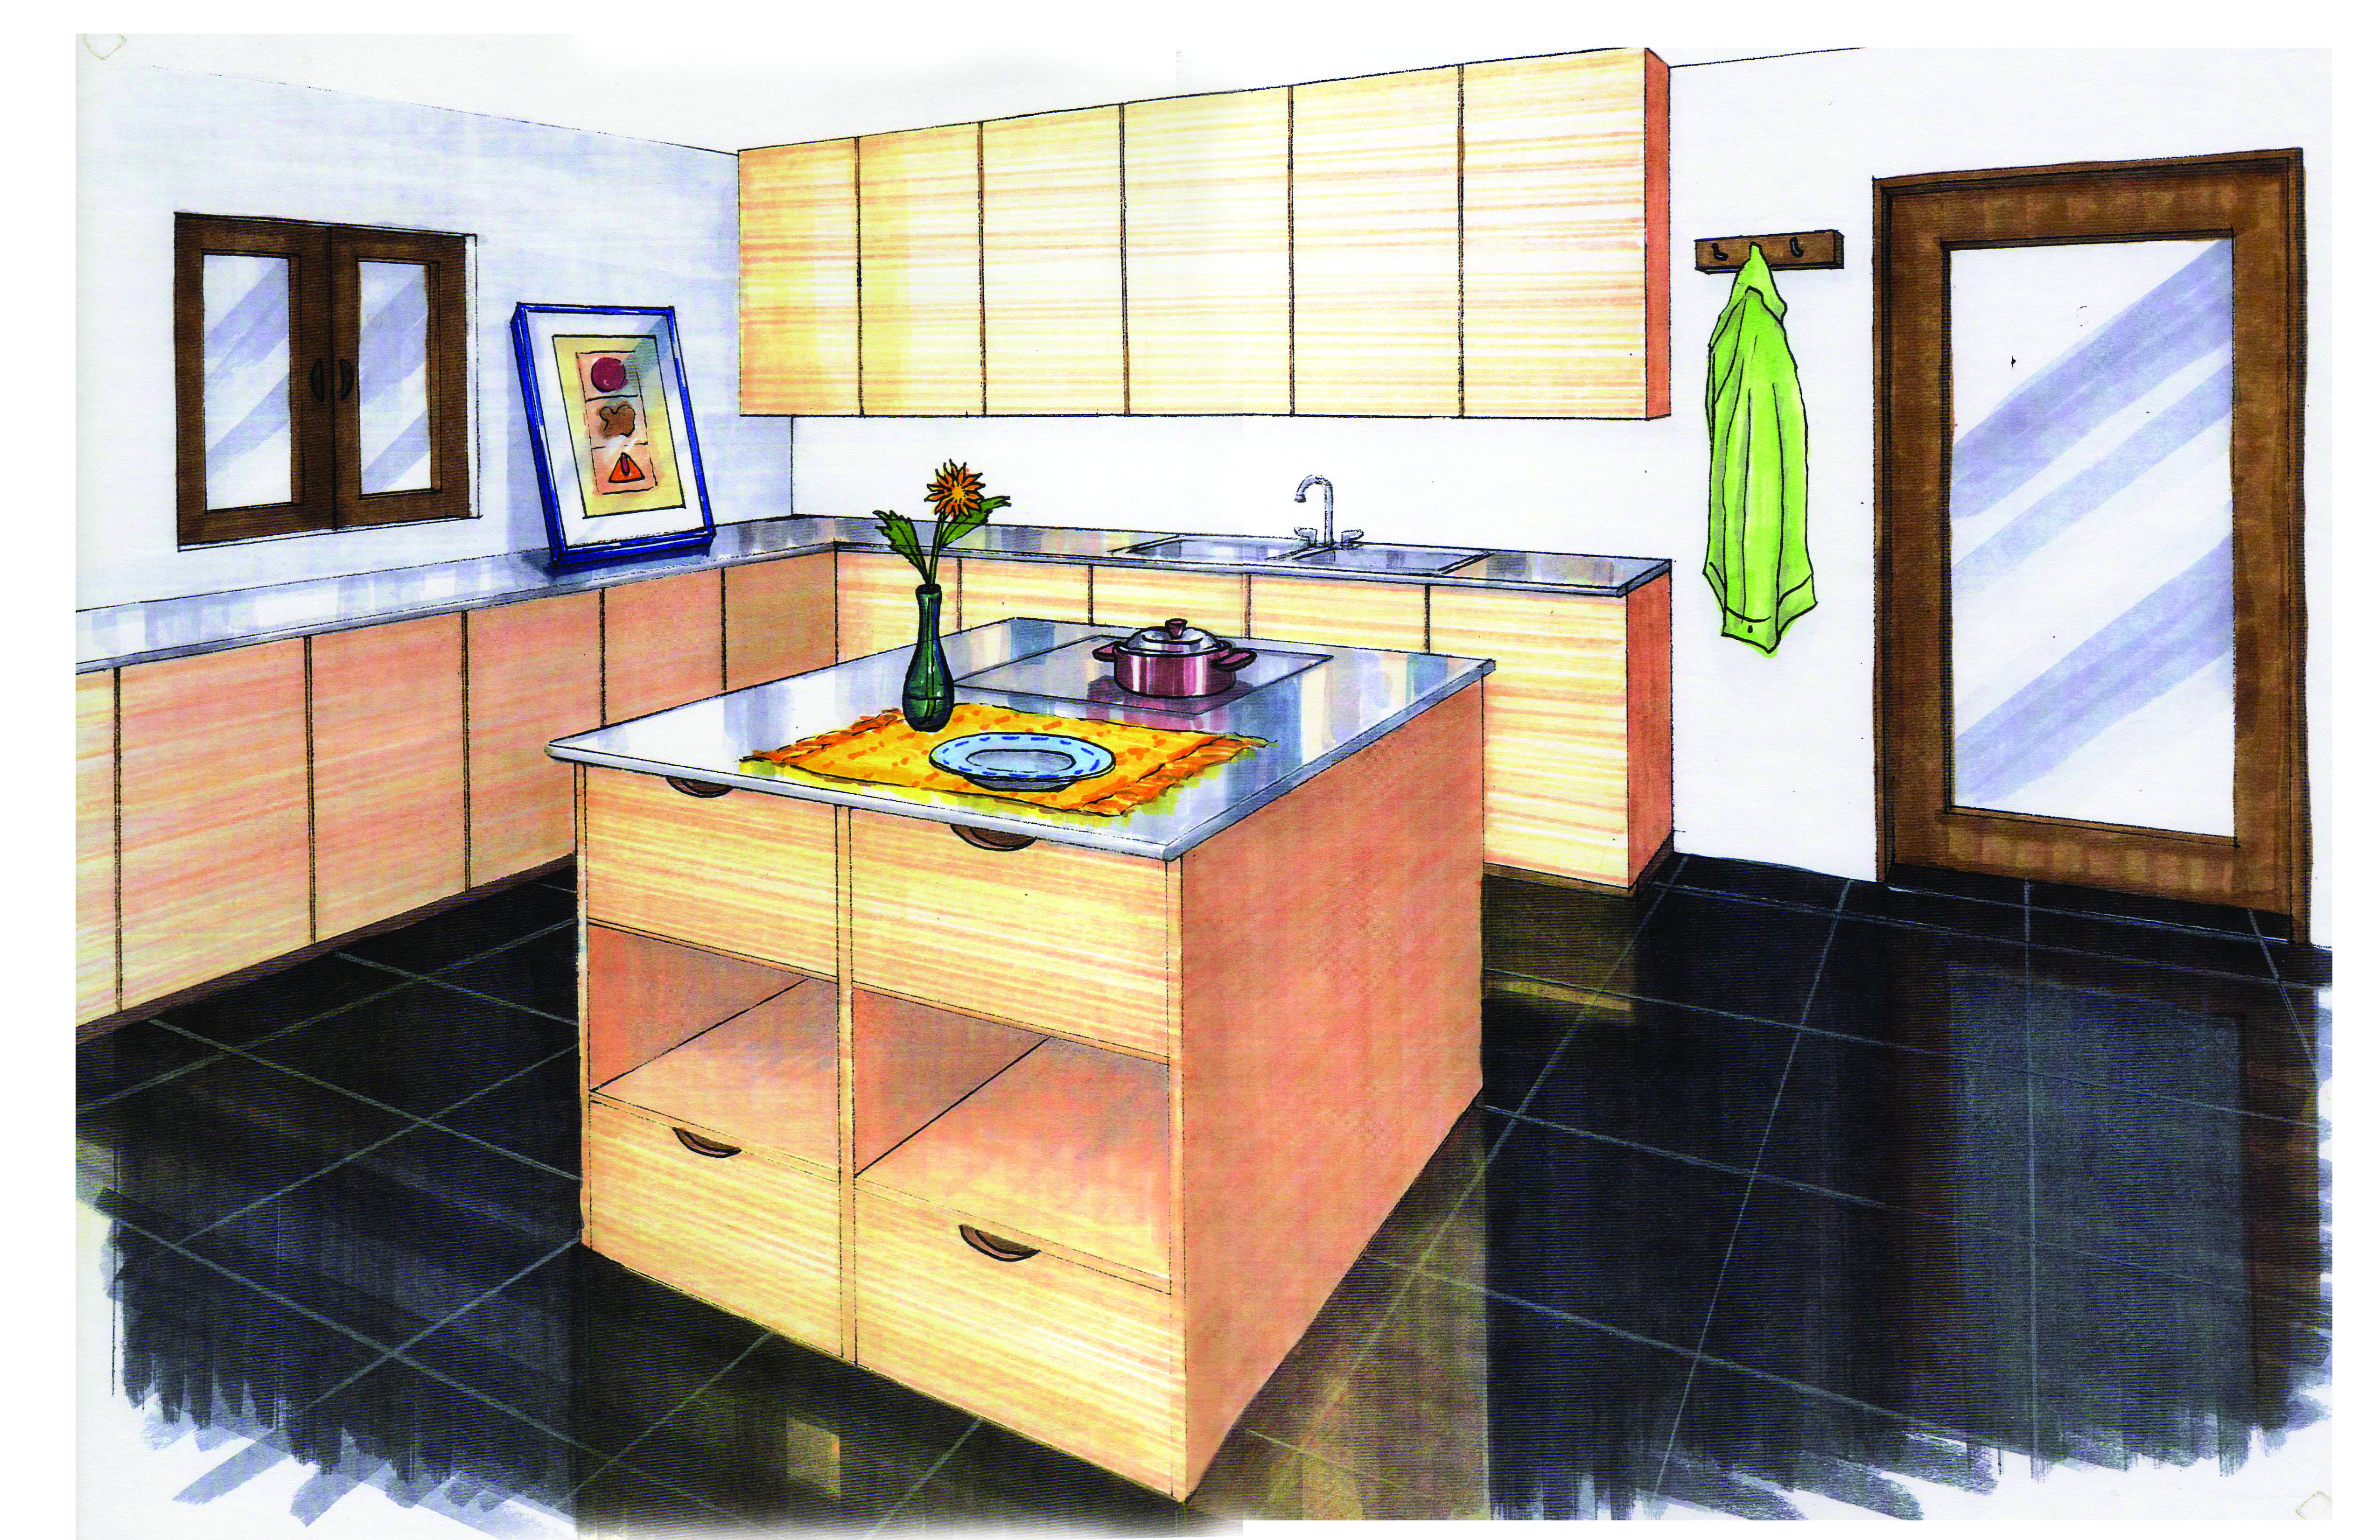 Kitchen Design - Hand Rendering